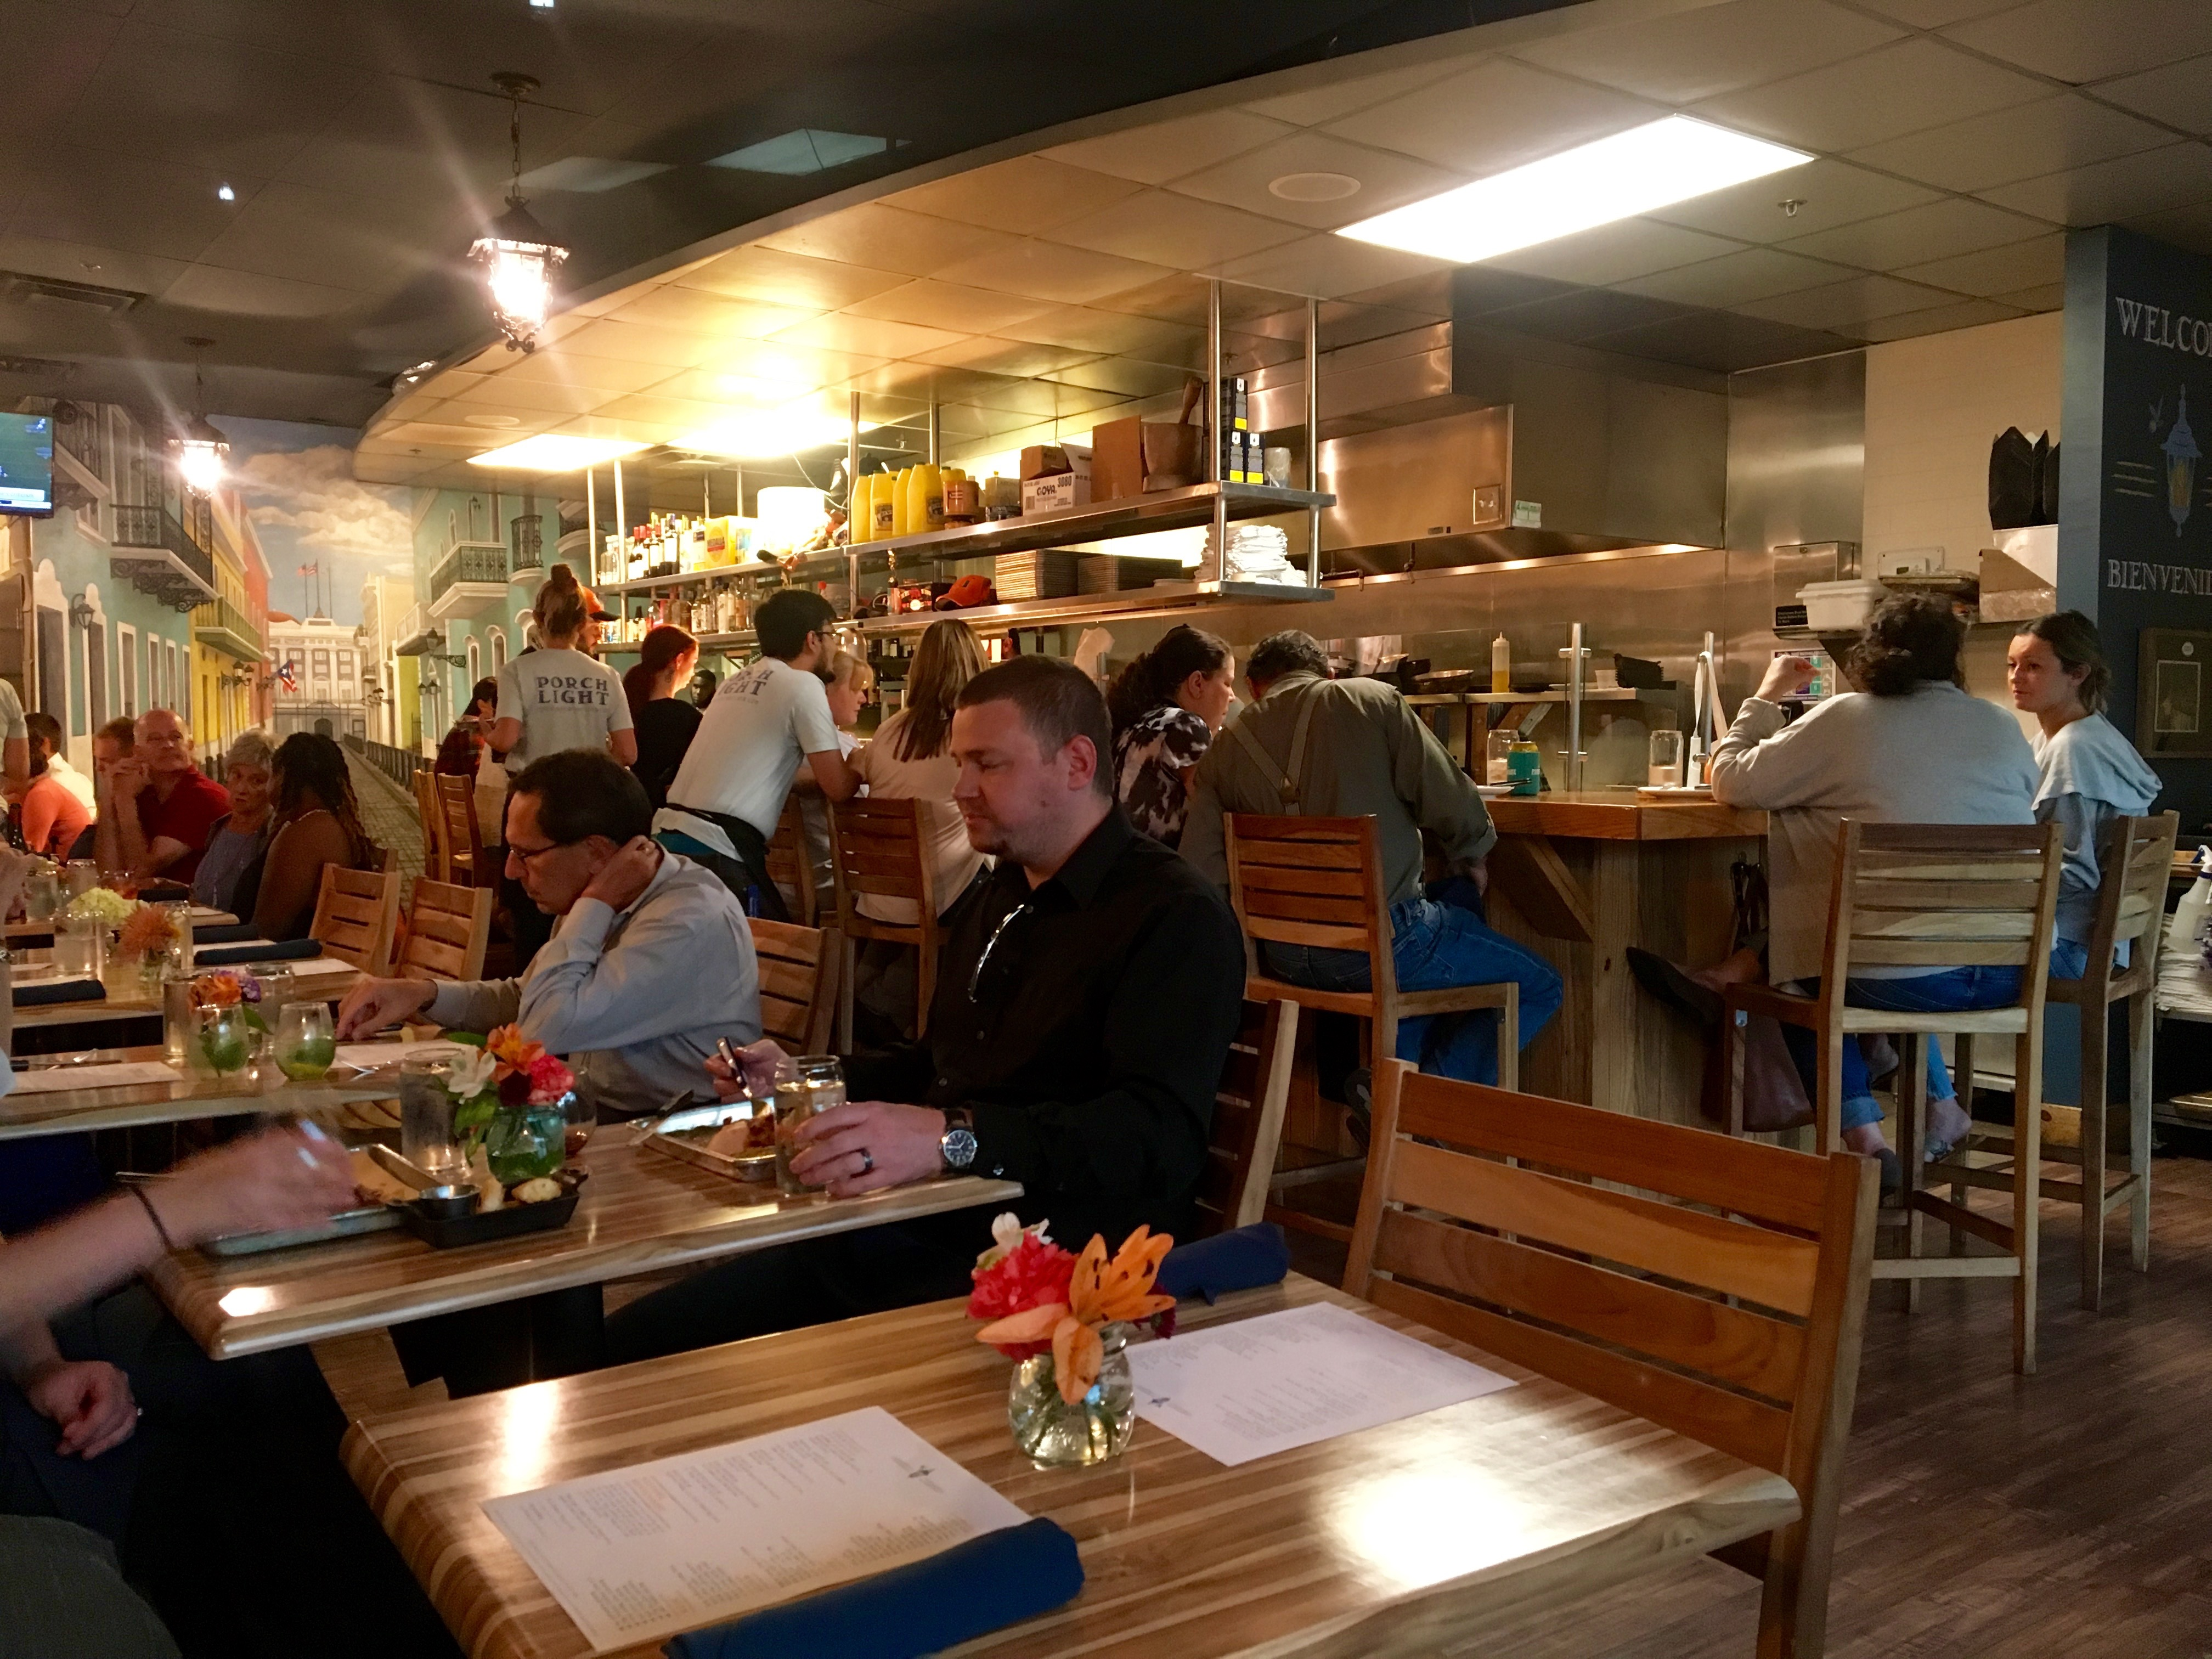 sit a spell at porch light latin kitchen – friday date night